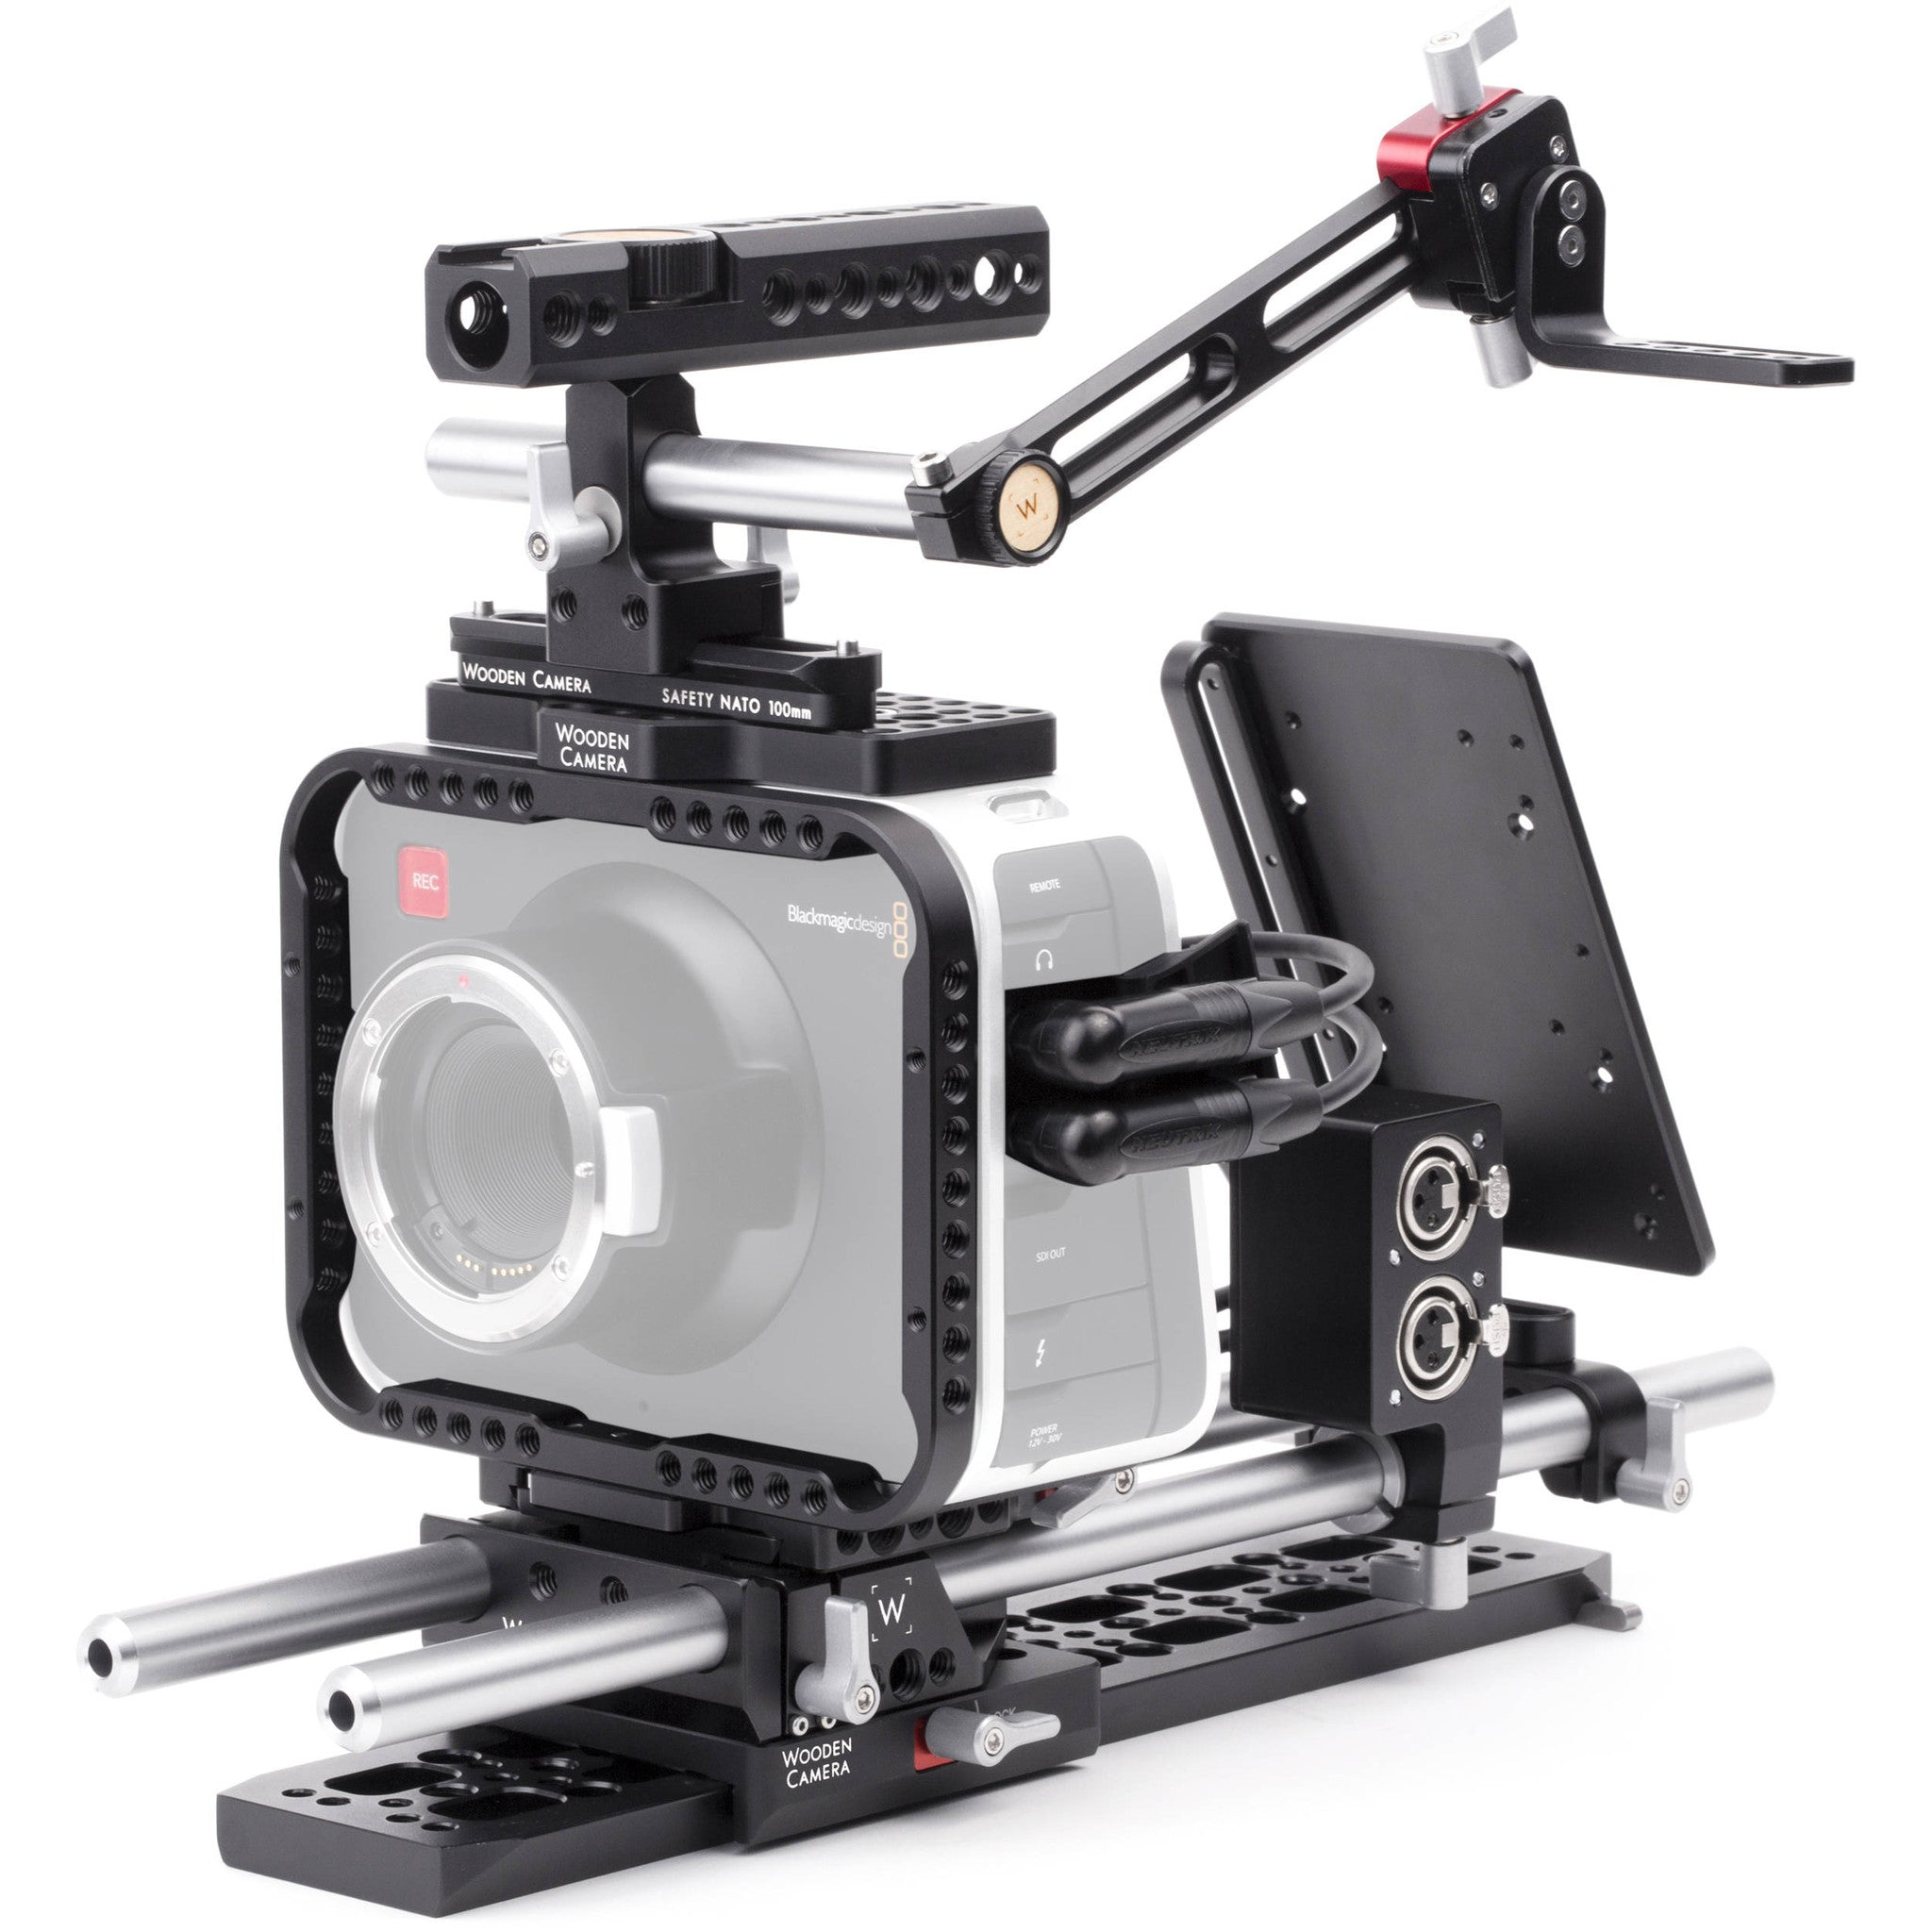 Wooden Camera Professional Accessory Kit for Blackmagic Cinema Camera